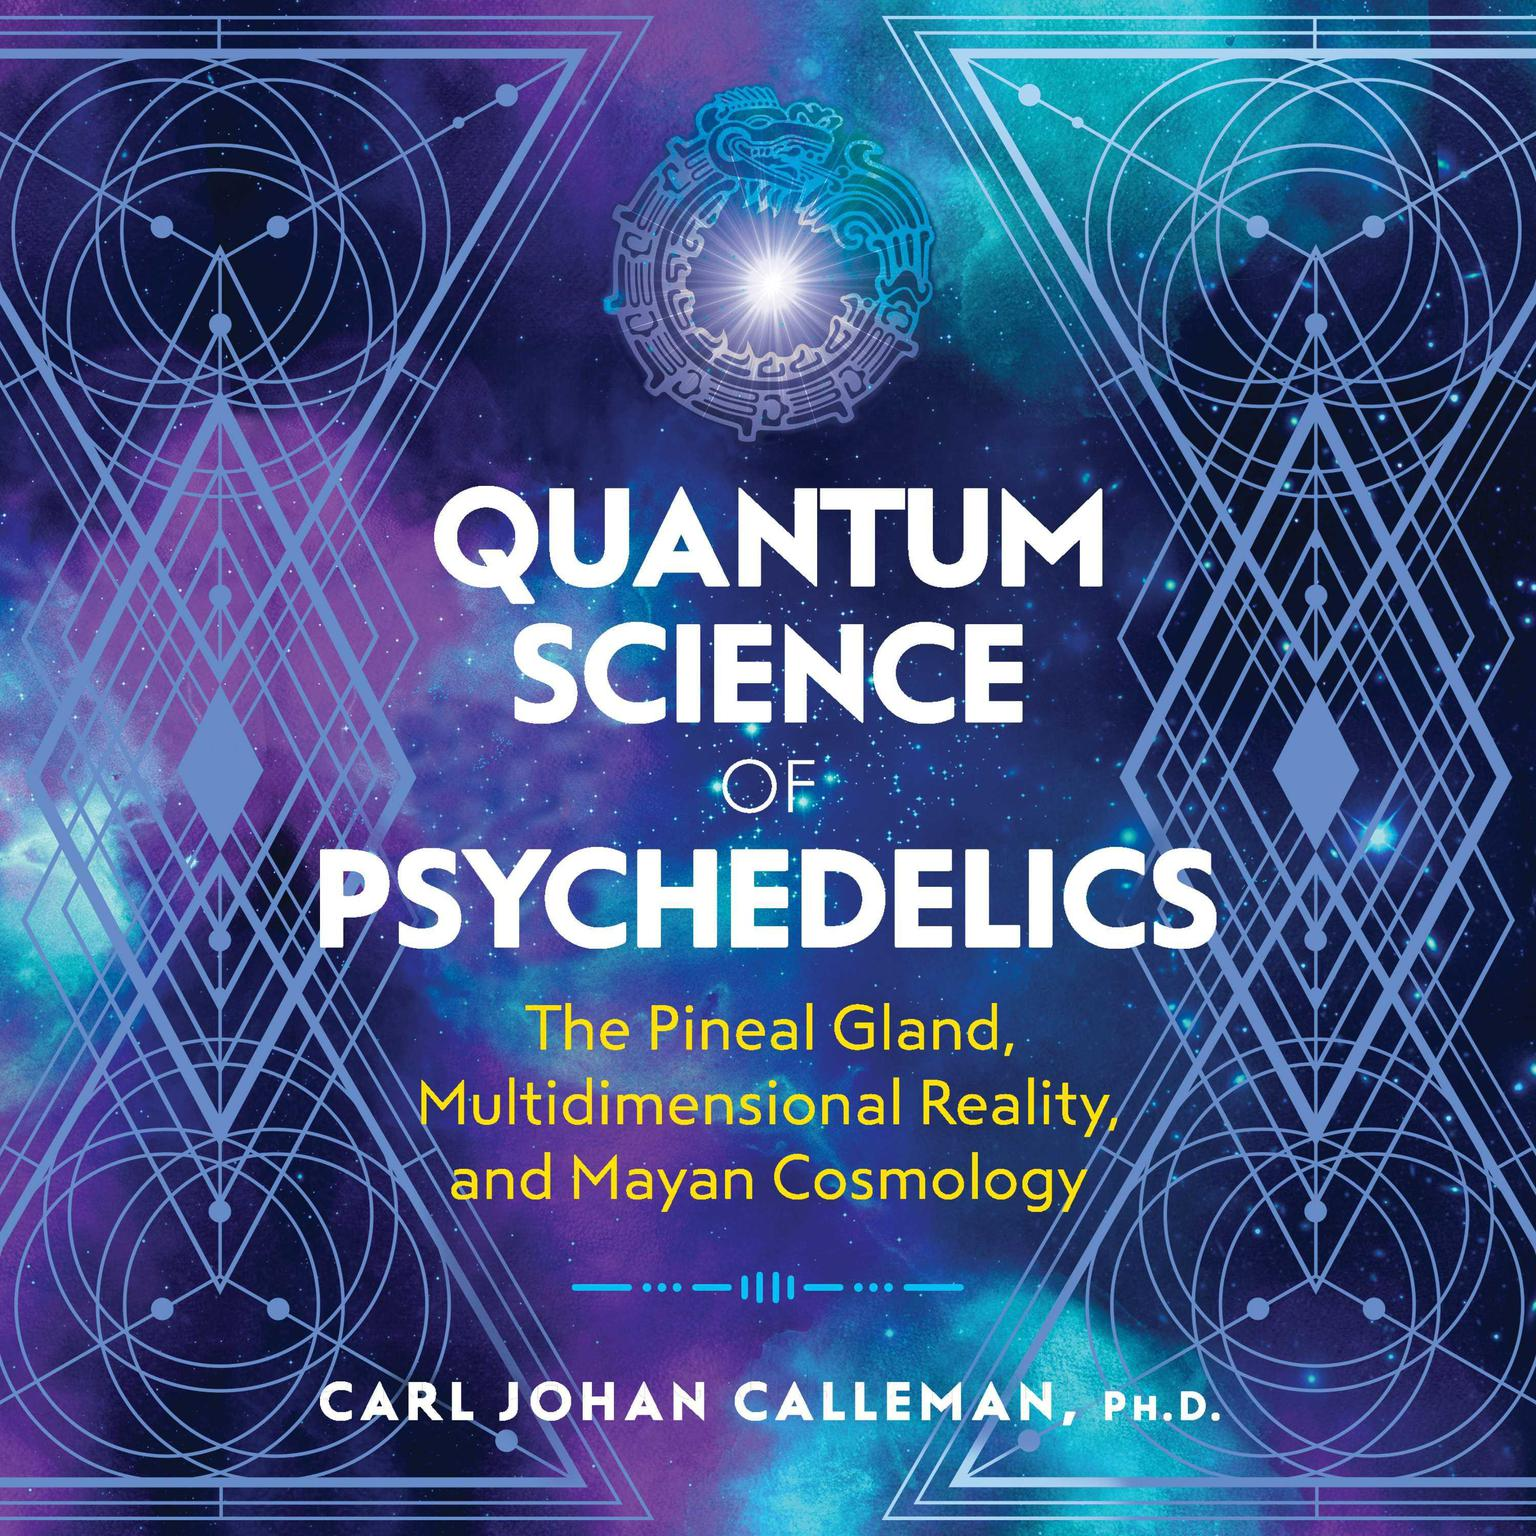 Quantum Science of Psychedelics: The Pineal Gland, Multidimensional Reality, and Mayan Cosmology Audiobook, by Carl Johan Calleman